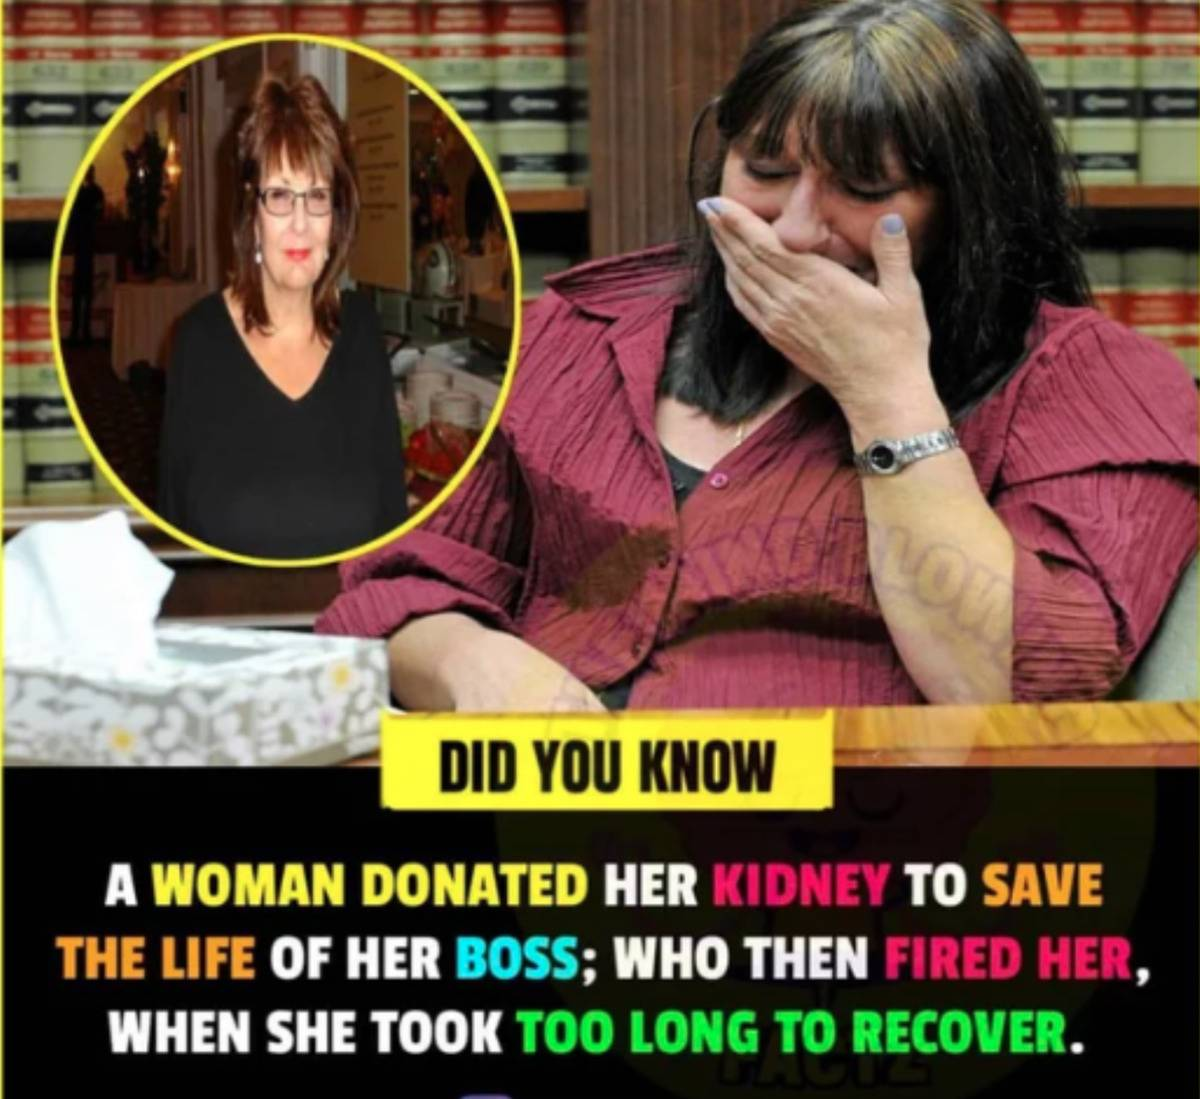 headline: a woman donated her kidney to help save the life of her boss who then fired her when she took too long to recover